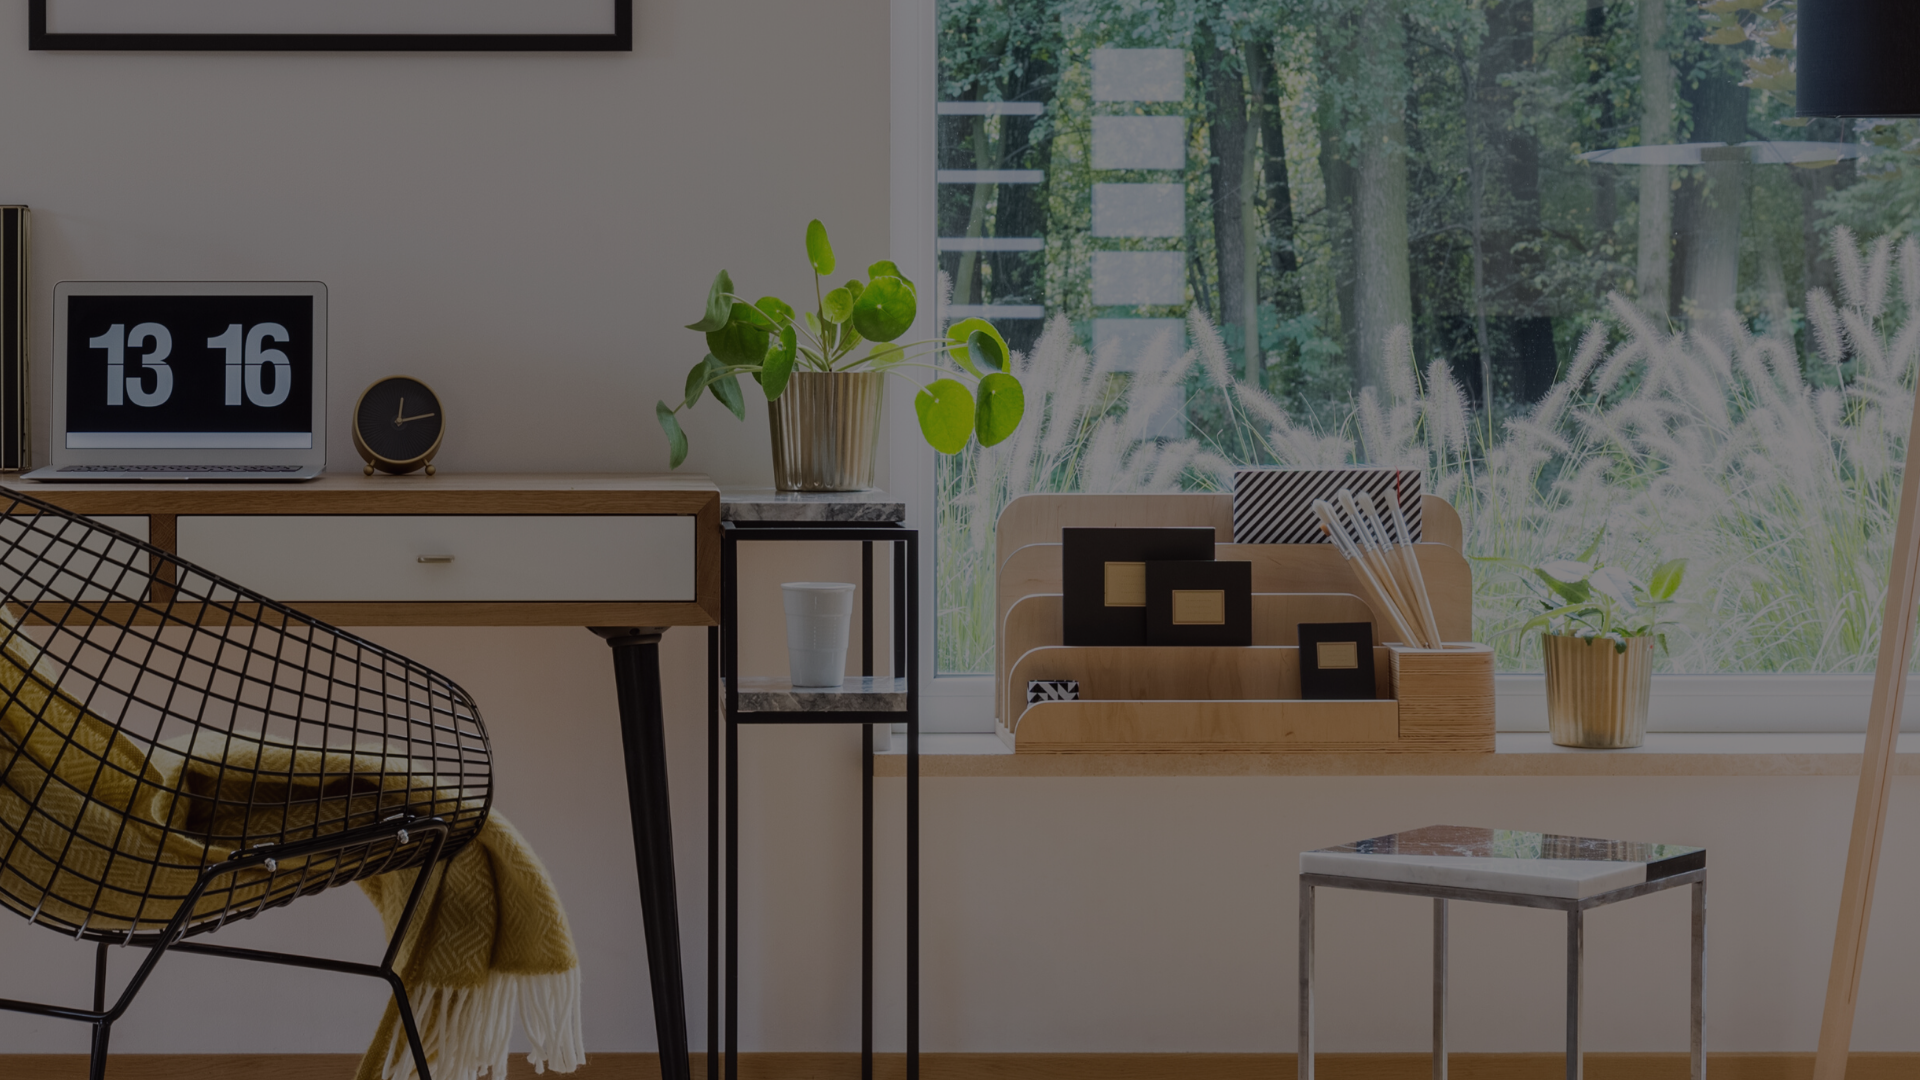 FREE WEBINAR: Keeping Your Employees Happy and Healthy from Home